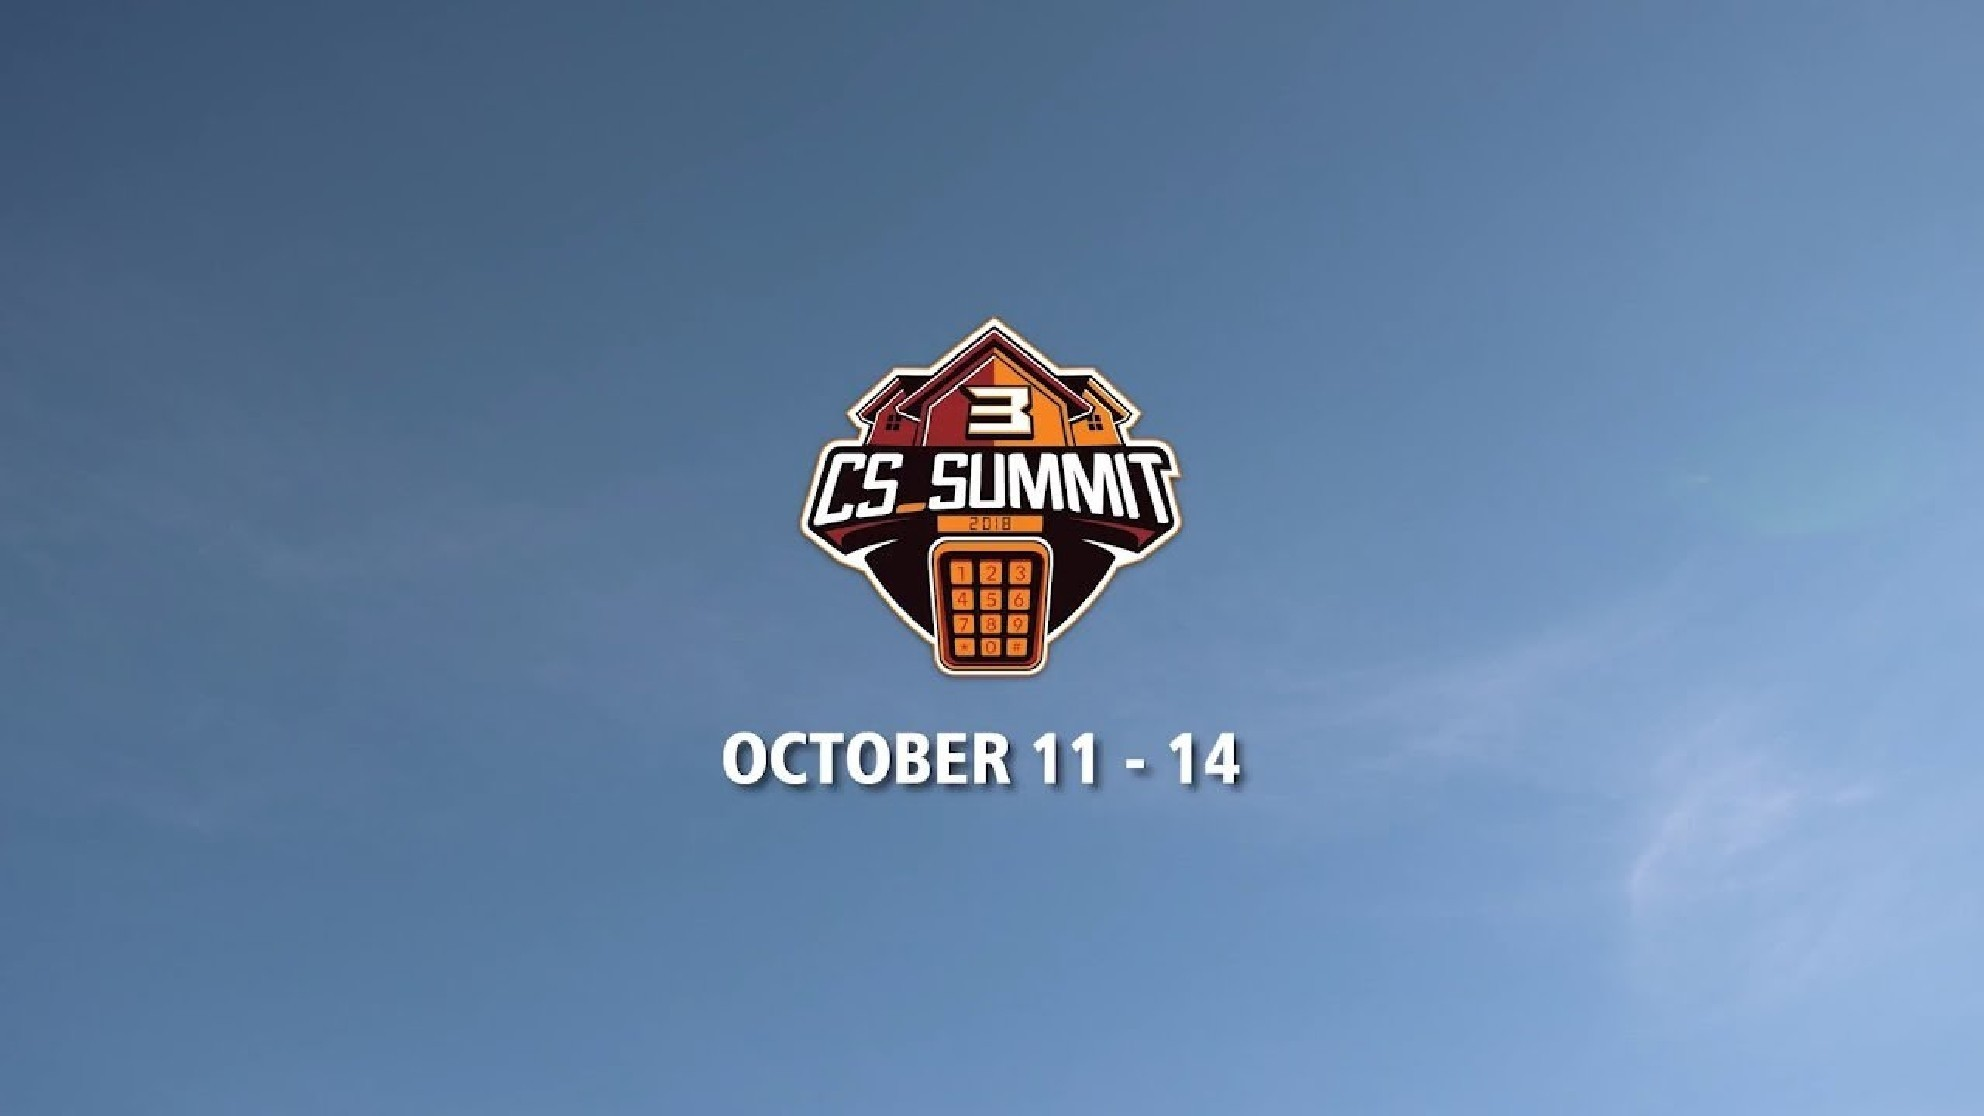 Cs_summit 3 has announced schedule and bracket